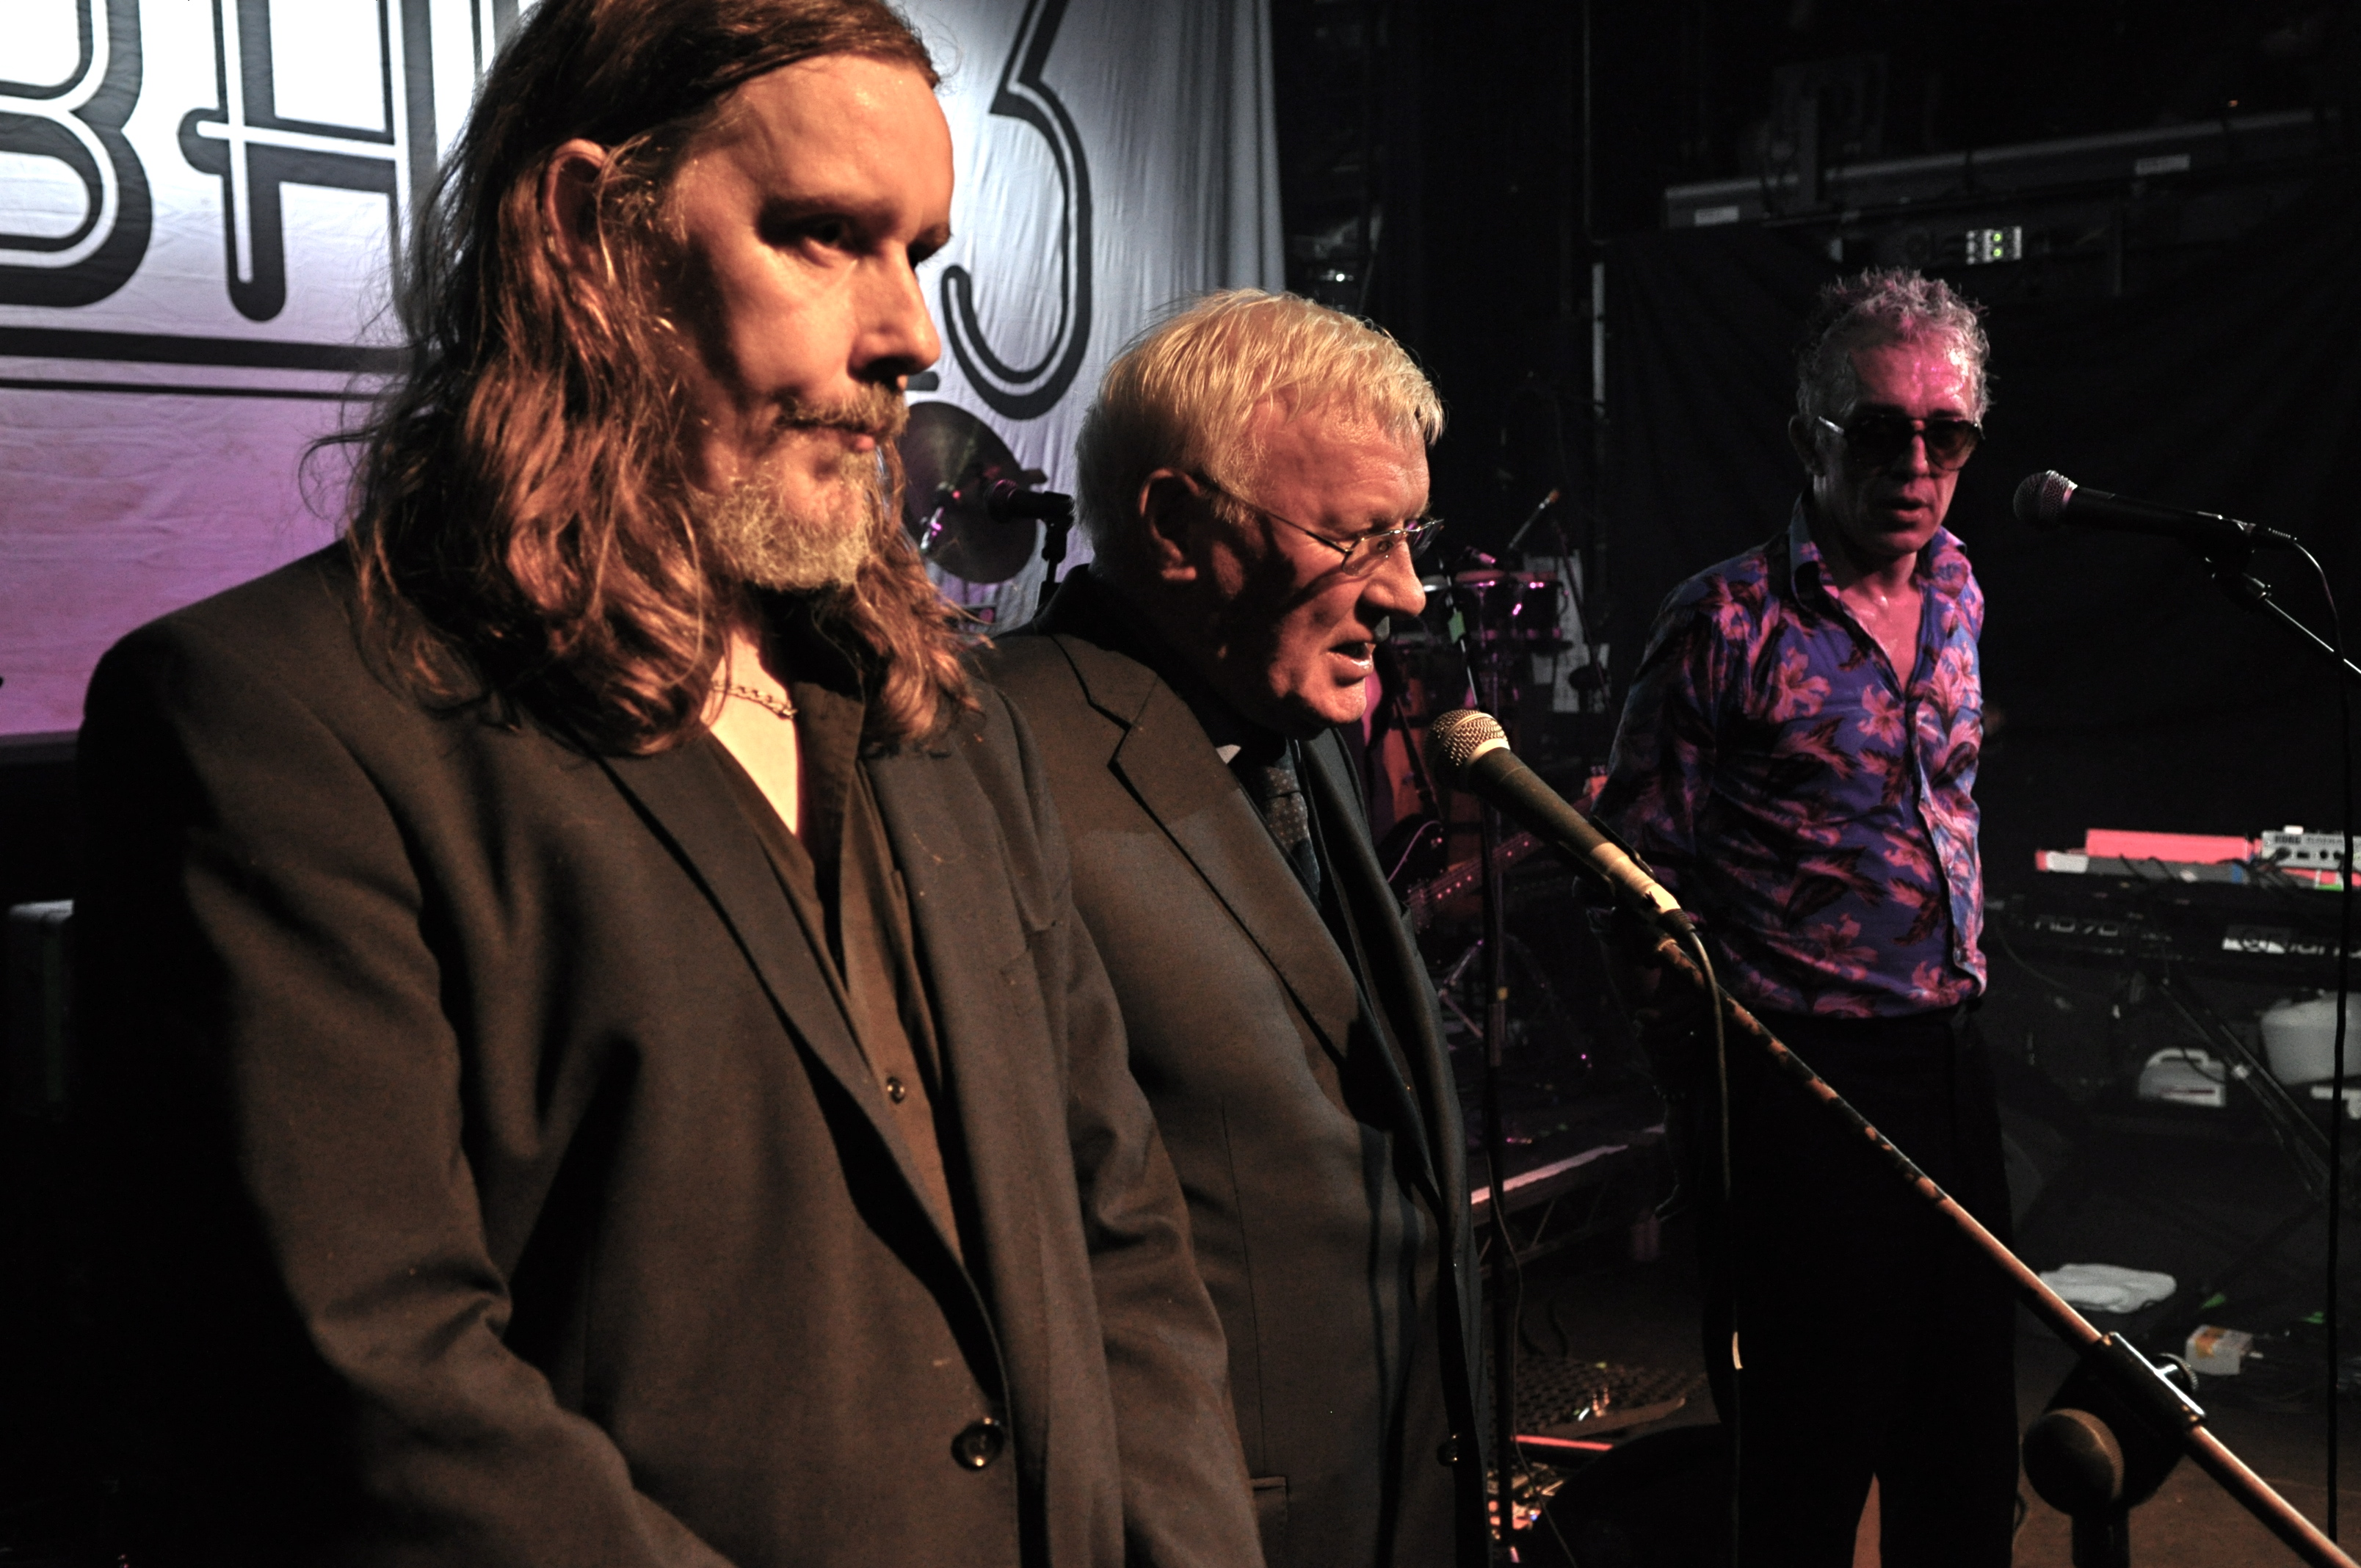 Sean Garland on stage with the Alabama 3